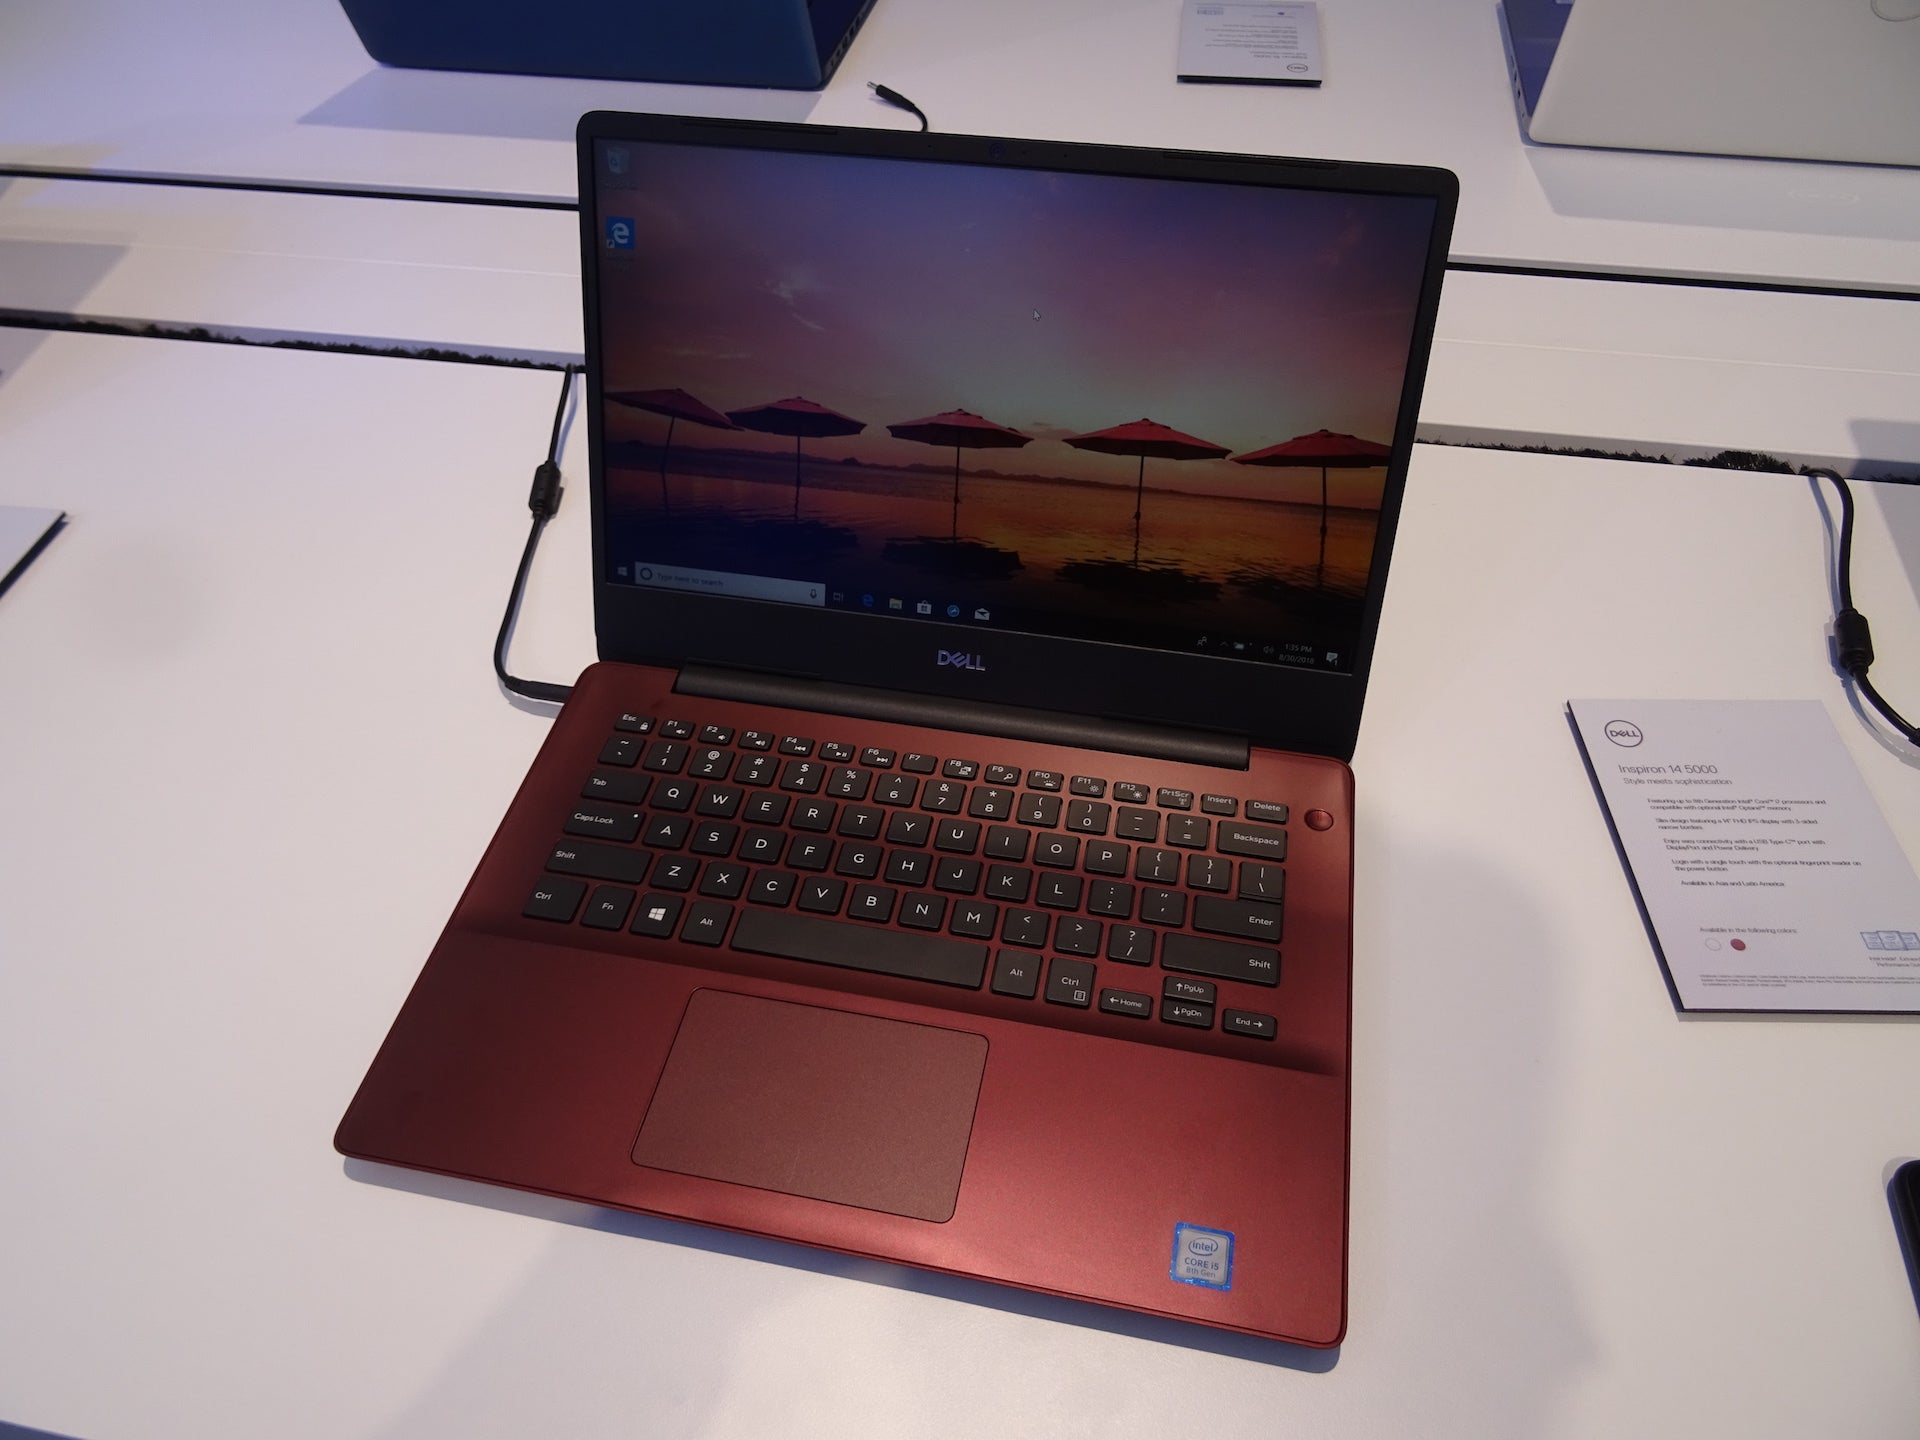 Dell Inspiron 15 5000 (5580) first look Review | Trusted Reviews